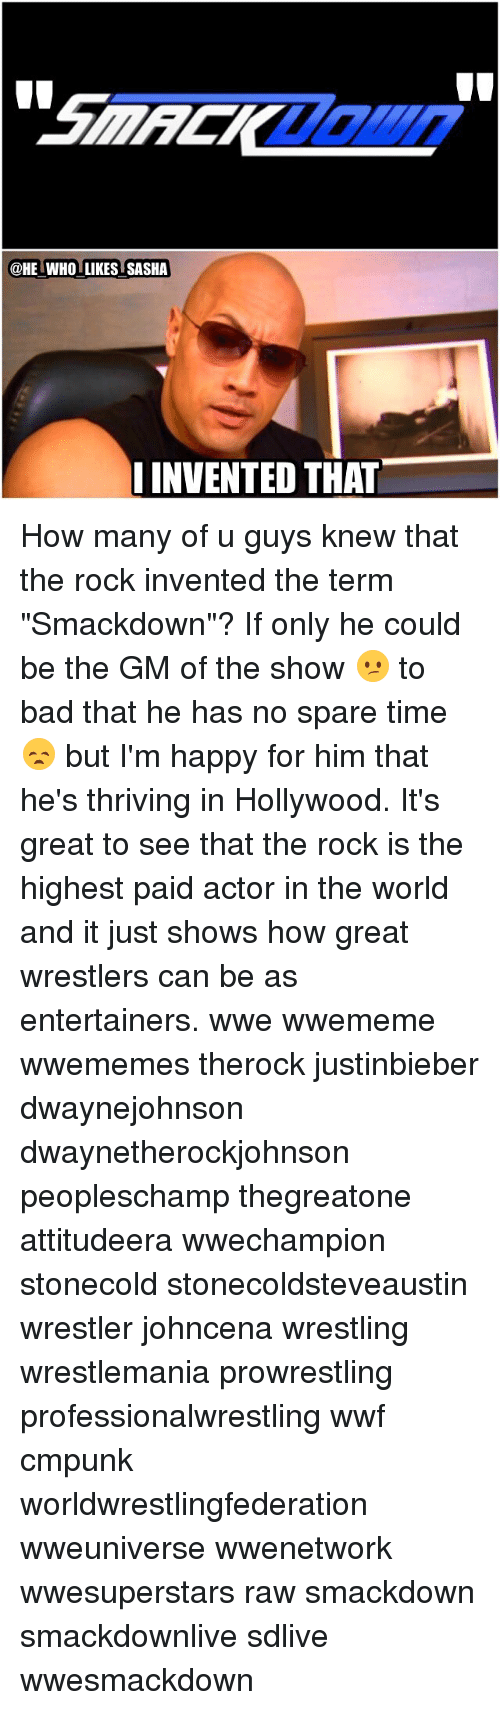 """Sparing Time: HE WHO LIKES SASHA  INVENTED THAT How many of u guys knew that the rock invented the term """"Smackdown""""? If only he could be the GM of the show 😕 to bad that he has no spare time😞 but I'm happy for him that he's thriving in Hollywood. It's great to see that the rock is the highest paid actor in the world and it just shows how great wrestlers can be as entertainers. wwe wwememe wwememes therock justinbieber dwaynejohnson dwaynetherockjohnson peopleschamp thegreatone attitudeera wwechampion stonecold stonecoldsteveaustin wrestler johncena wrestling wrestlemania prowrestling professionalwrestling wwf cmpunk worldwrestlingfederation wweuniverse wwenetwork wwesuperstars raw smackdown smackdownlive sdlive wwesmackdown"""